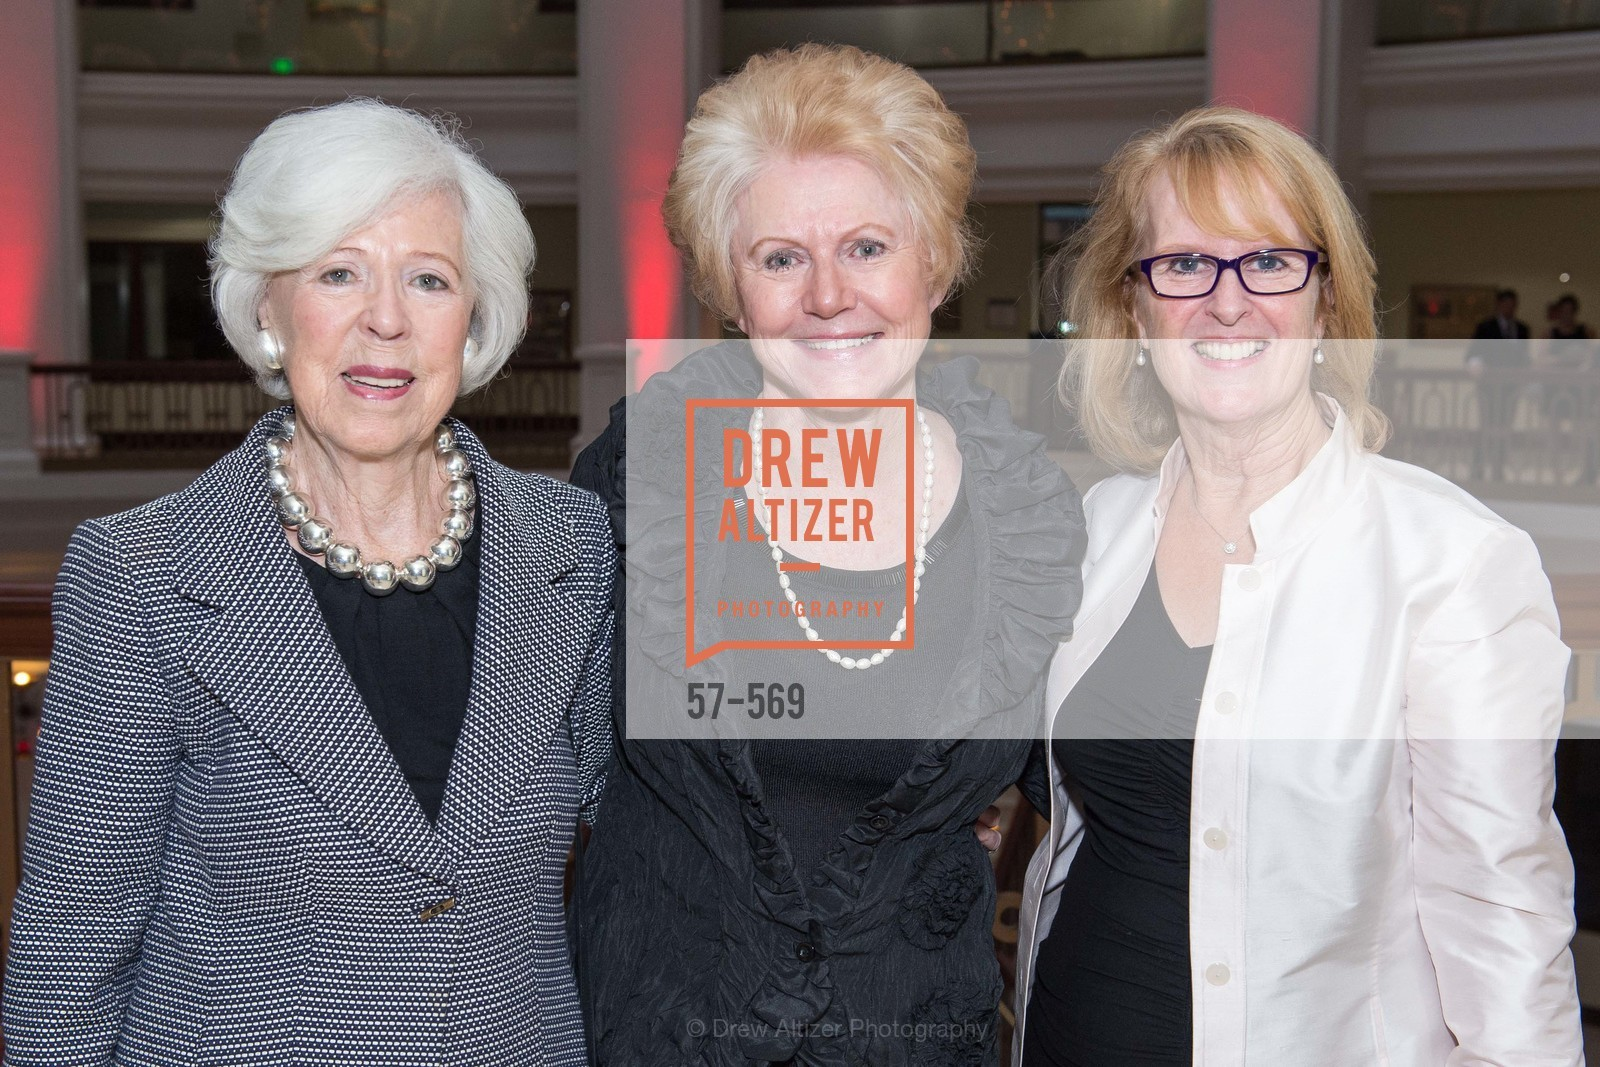 Margaret Hauben, Lois Dedemenico, Susan Smart, CHABOT Science Center STARLIGHT GALA, US, September 20th, 2014,Drew Altizer, Drew Altizer Photography, full-service agency, private events, San Francisco photographer, photographer california